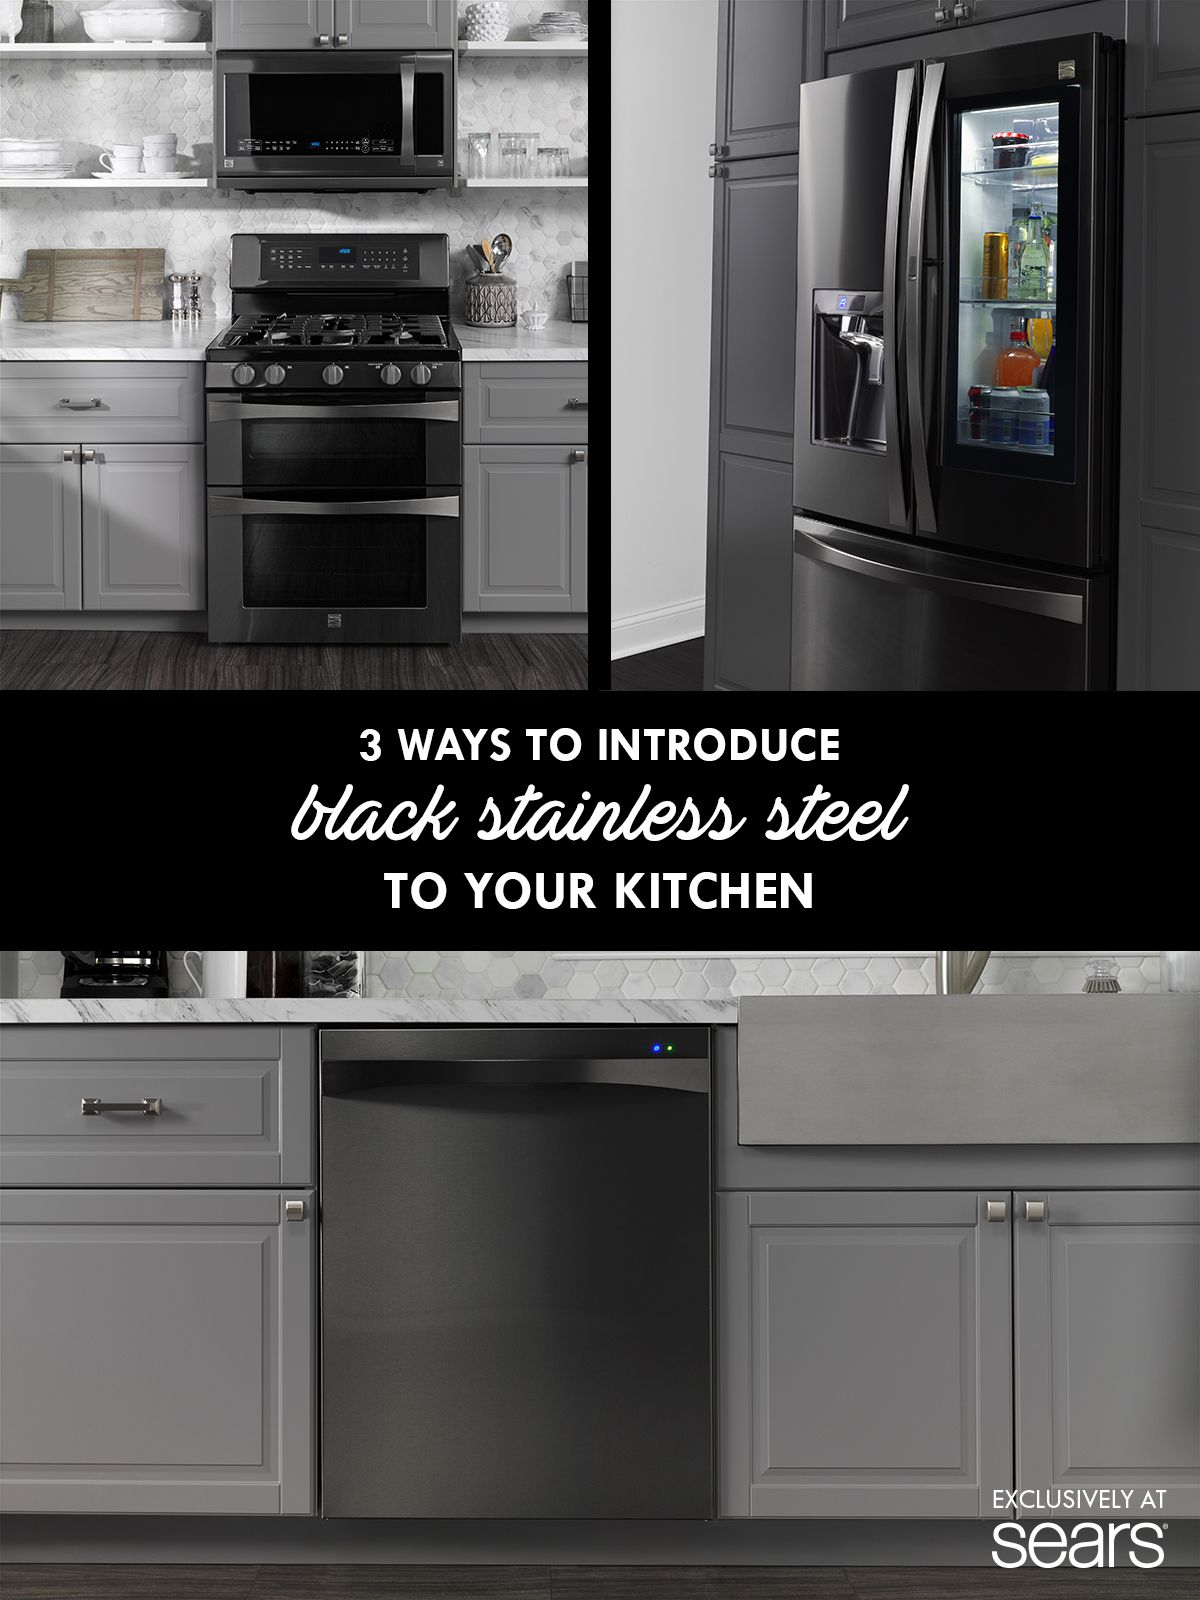 3 Ways To Introduce Black Stainless Steel To Your Kitchen Black Stainless Steel Kitchen Black Stainless Appliances Replacing Kitchen Countertops